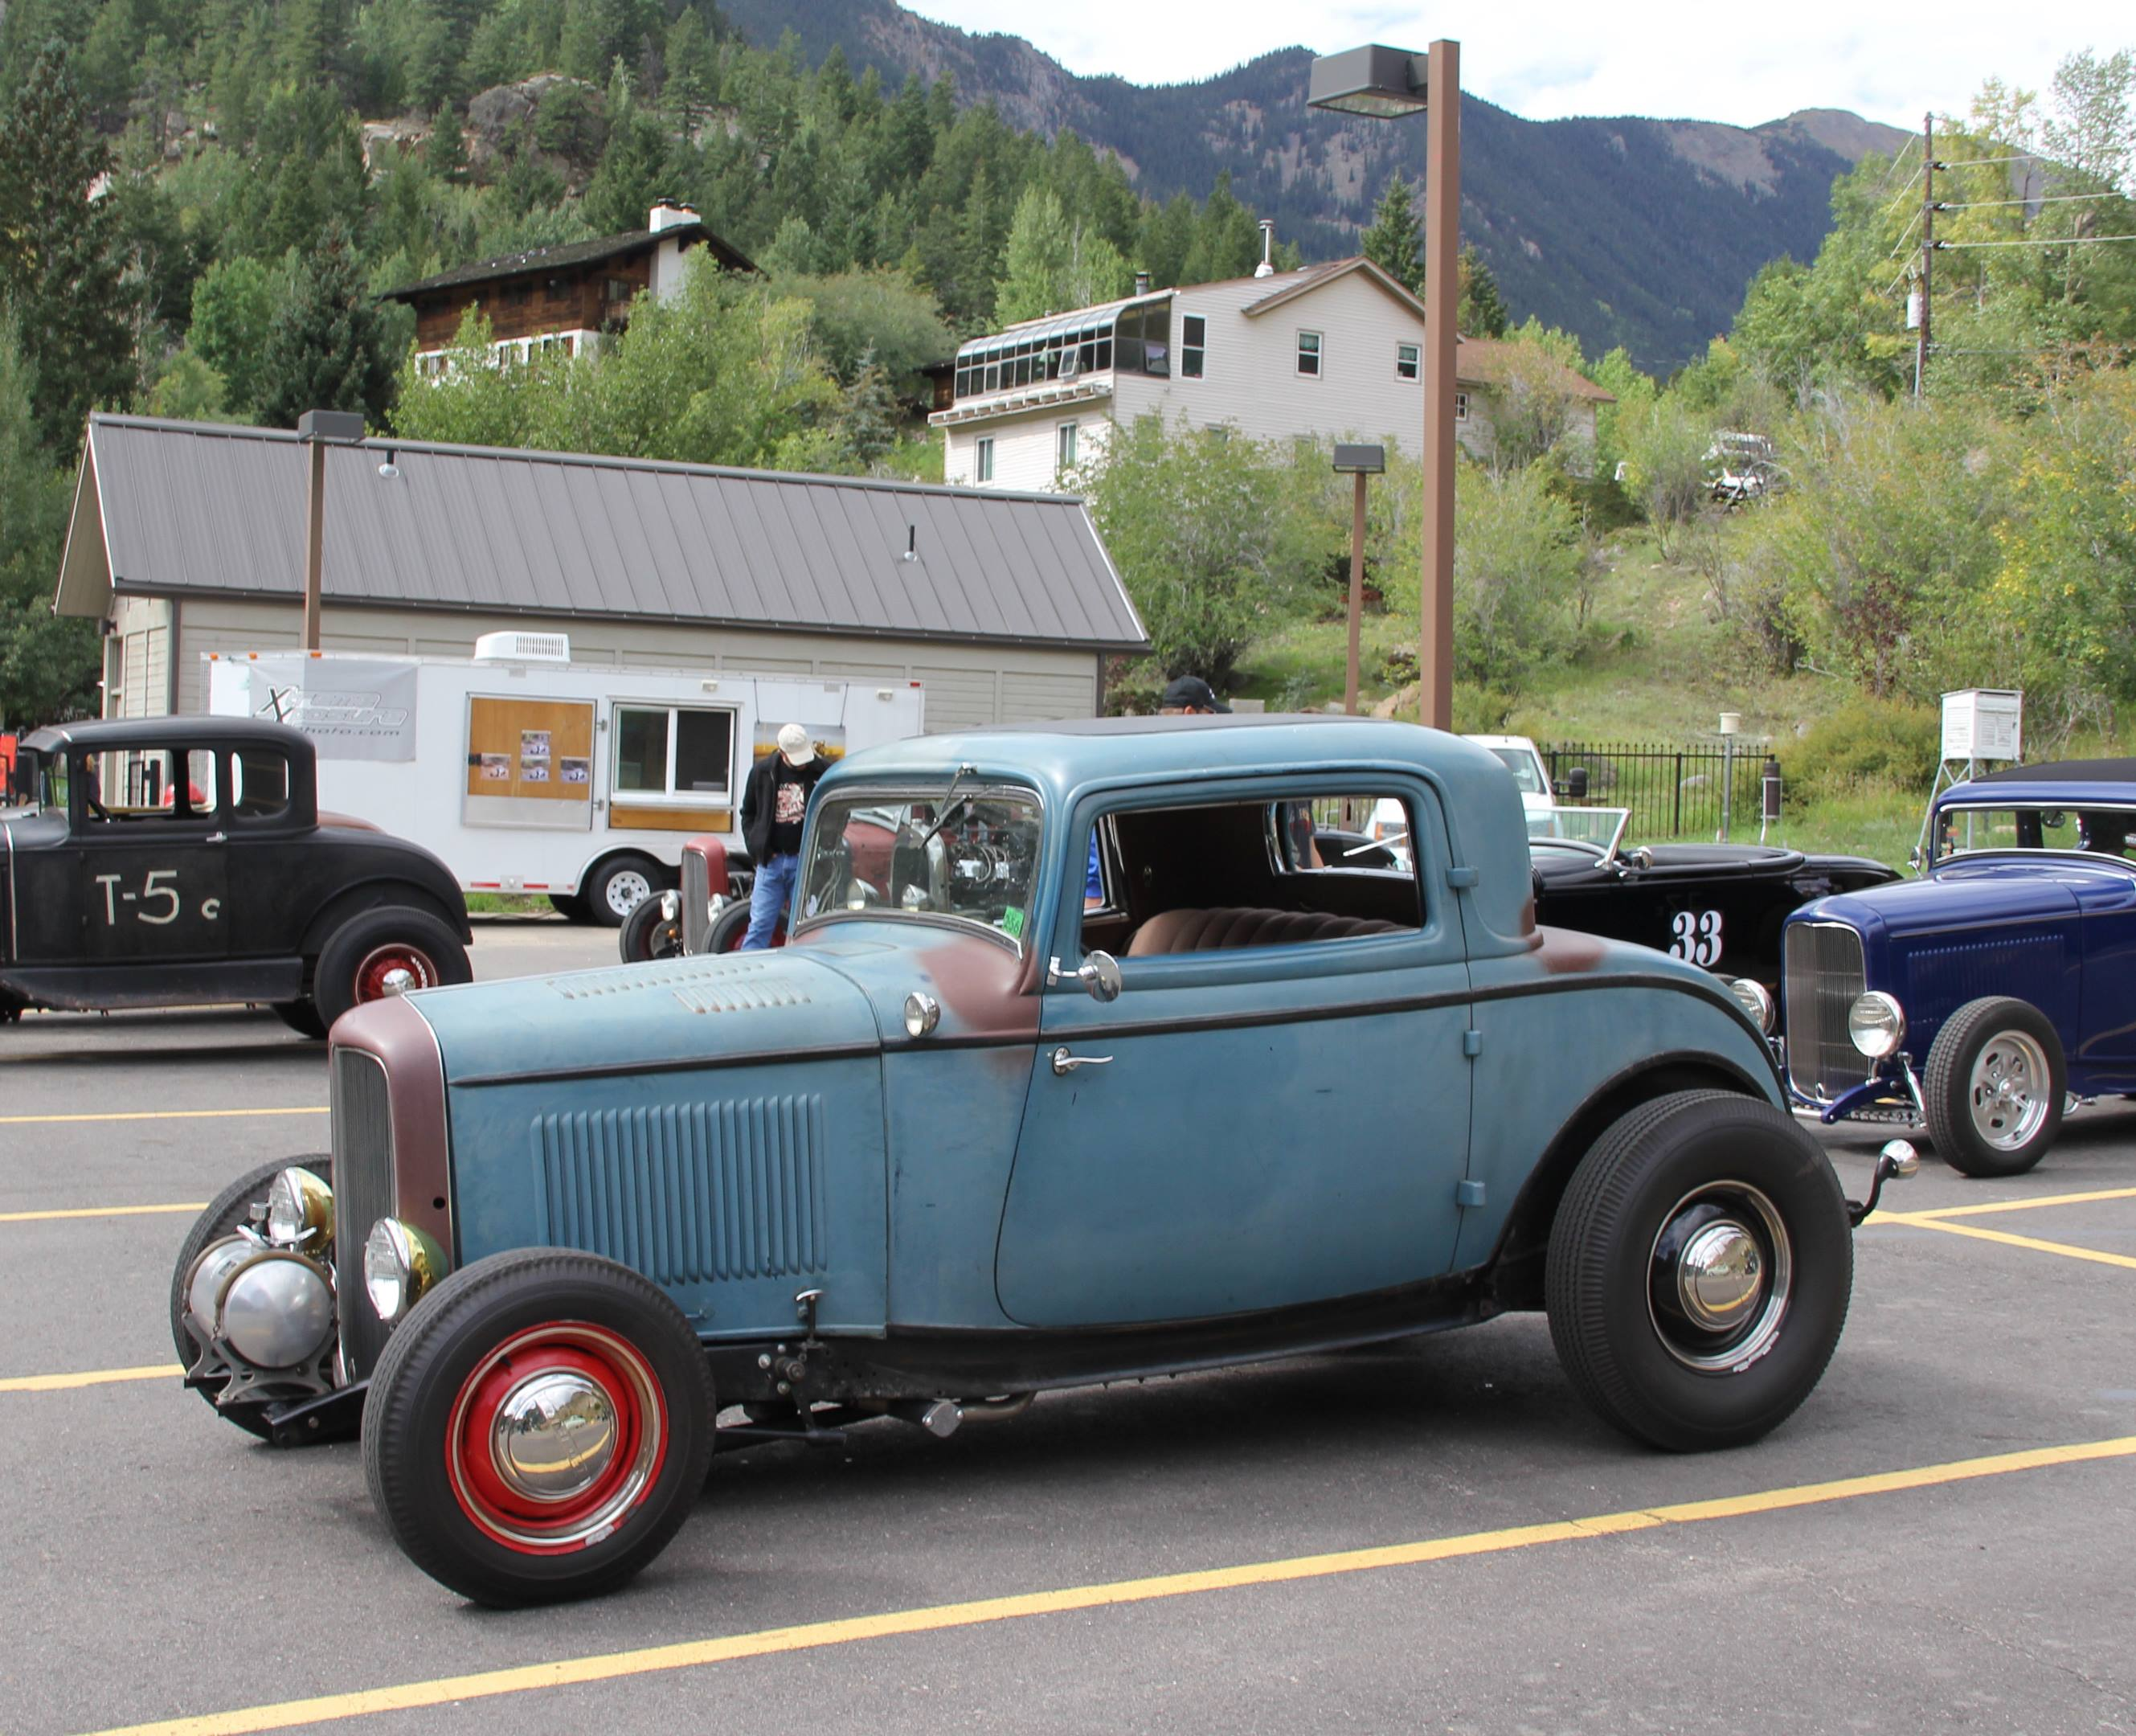 1932 Ford Deuce coupe with good patina